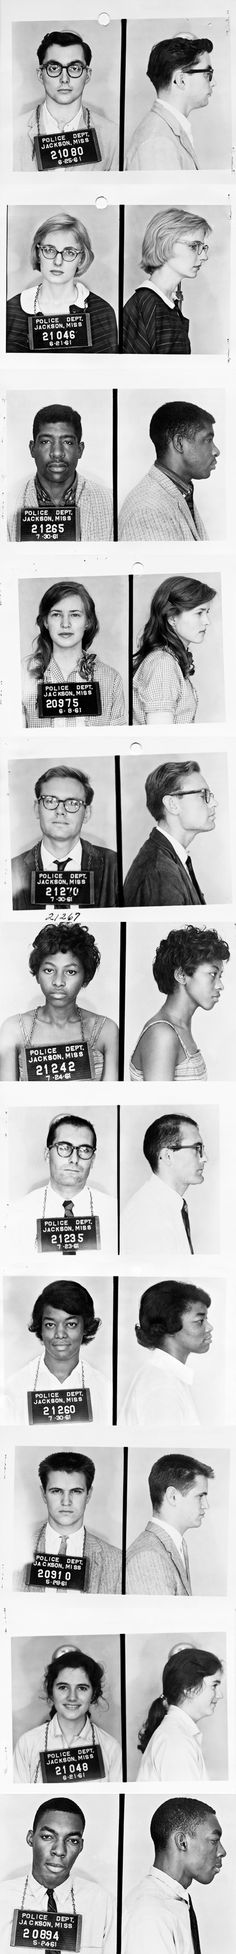 These guys are, 'Freedom Riders'. this doc.is about about the men and women who refused to ride segregated and traveled together on trains and buses during the Jim Crow era South.